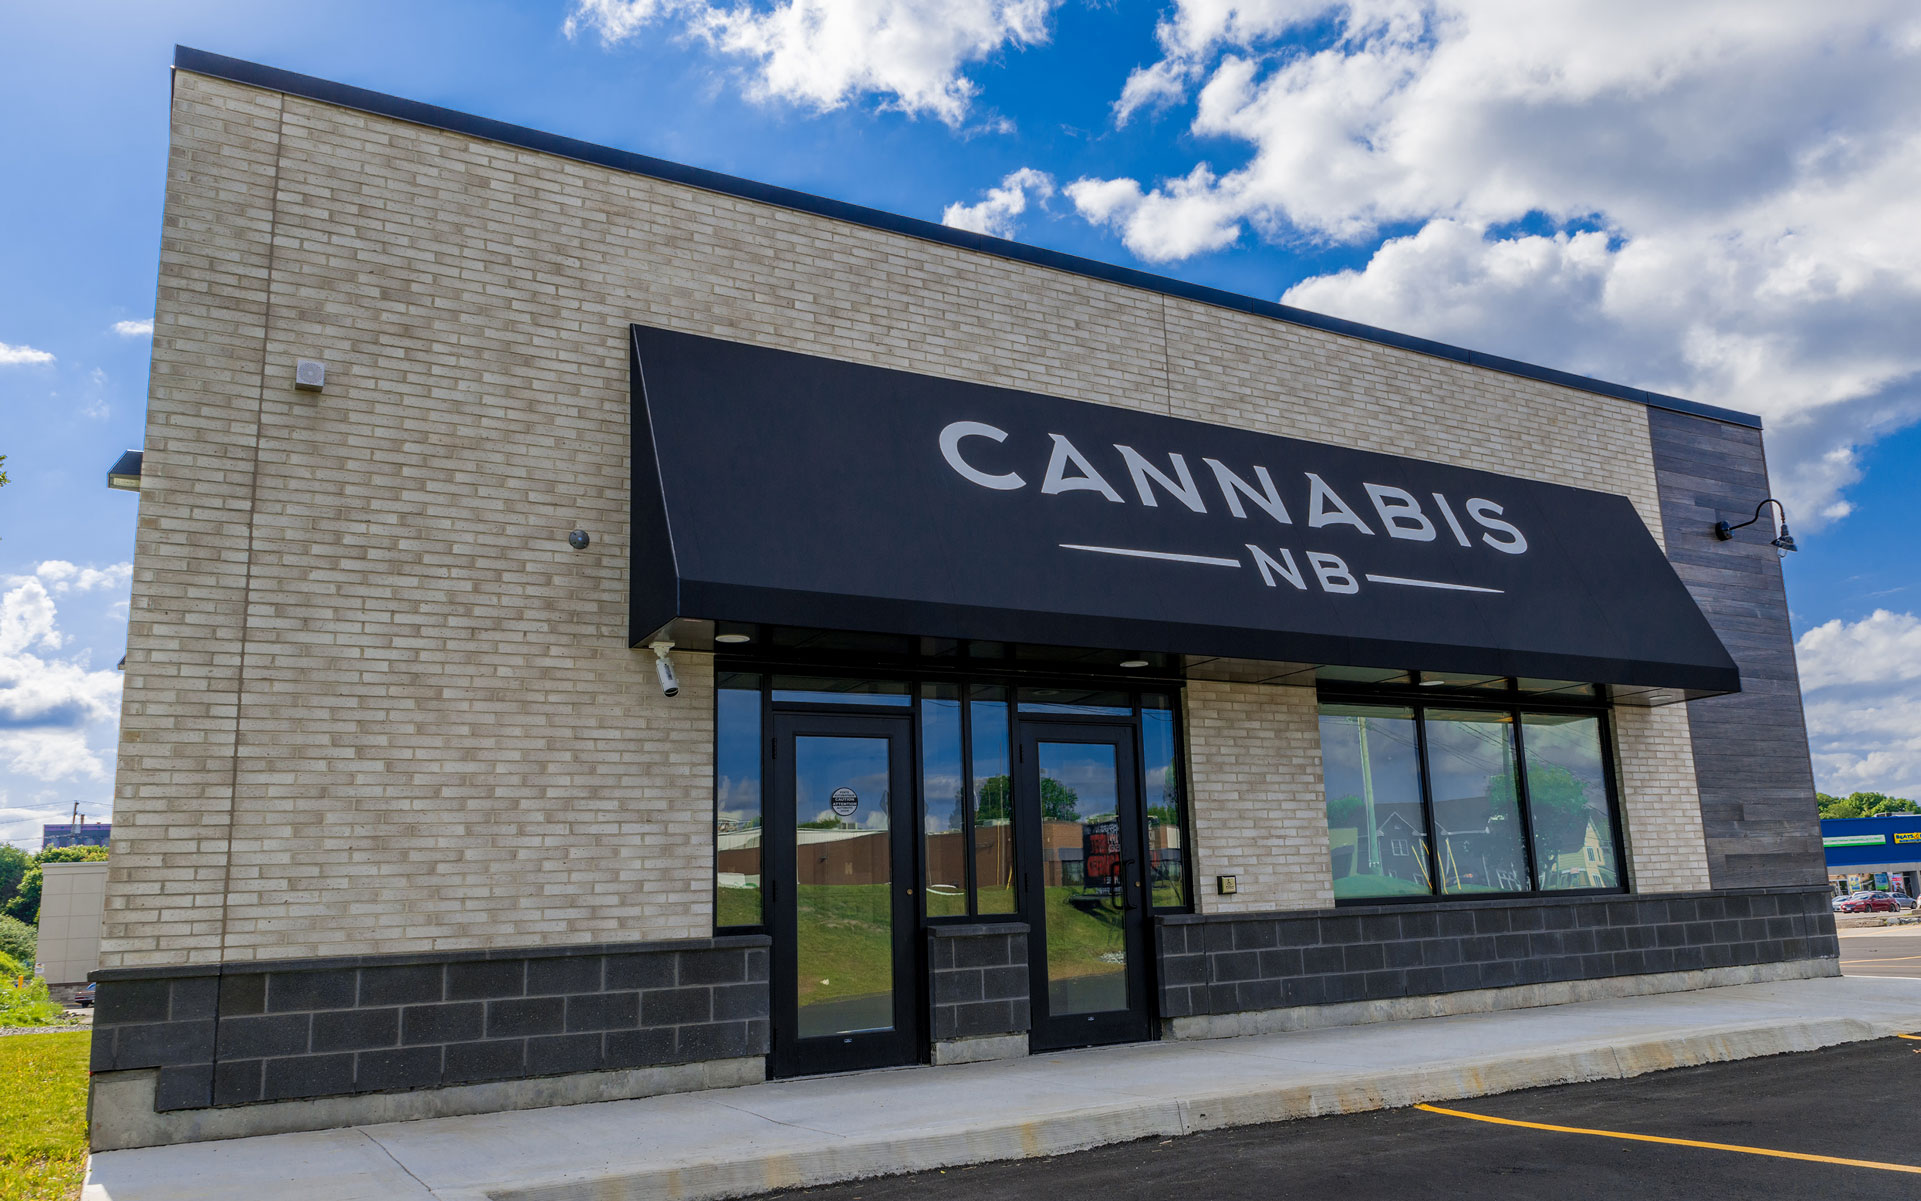 cannabis NB New Brunswick